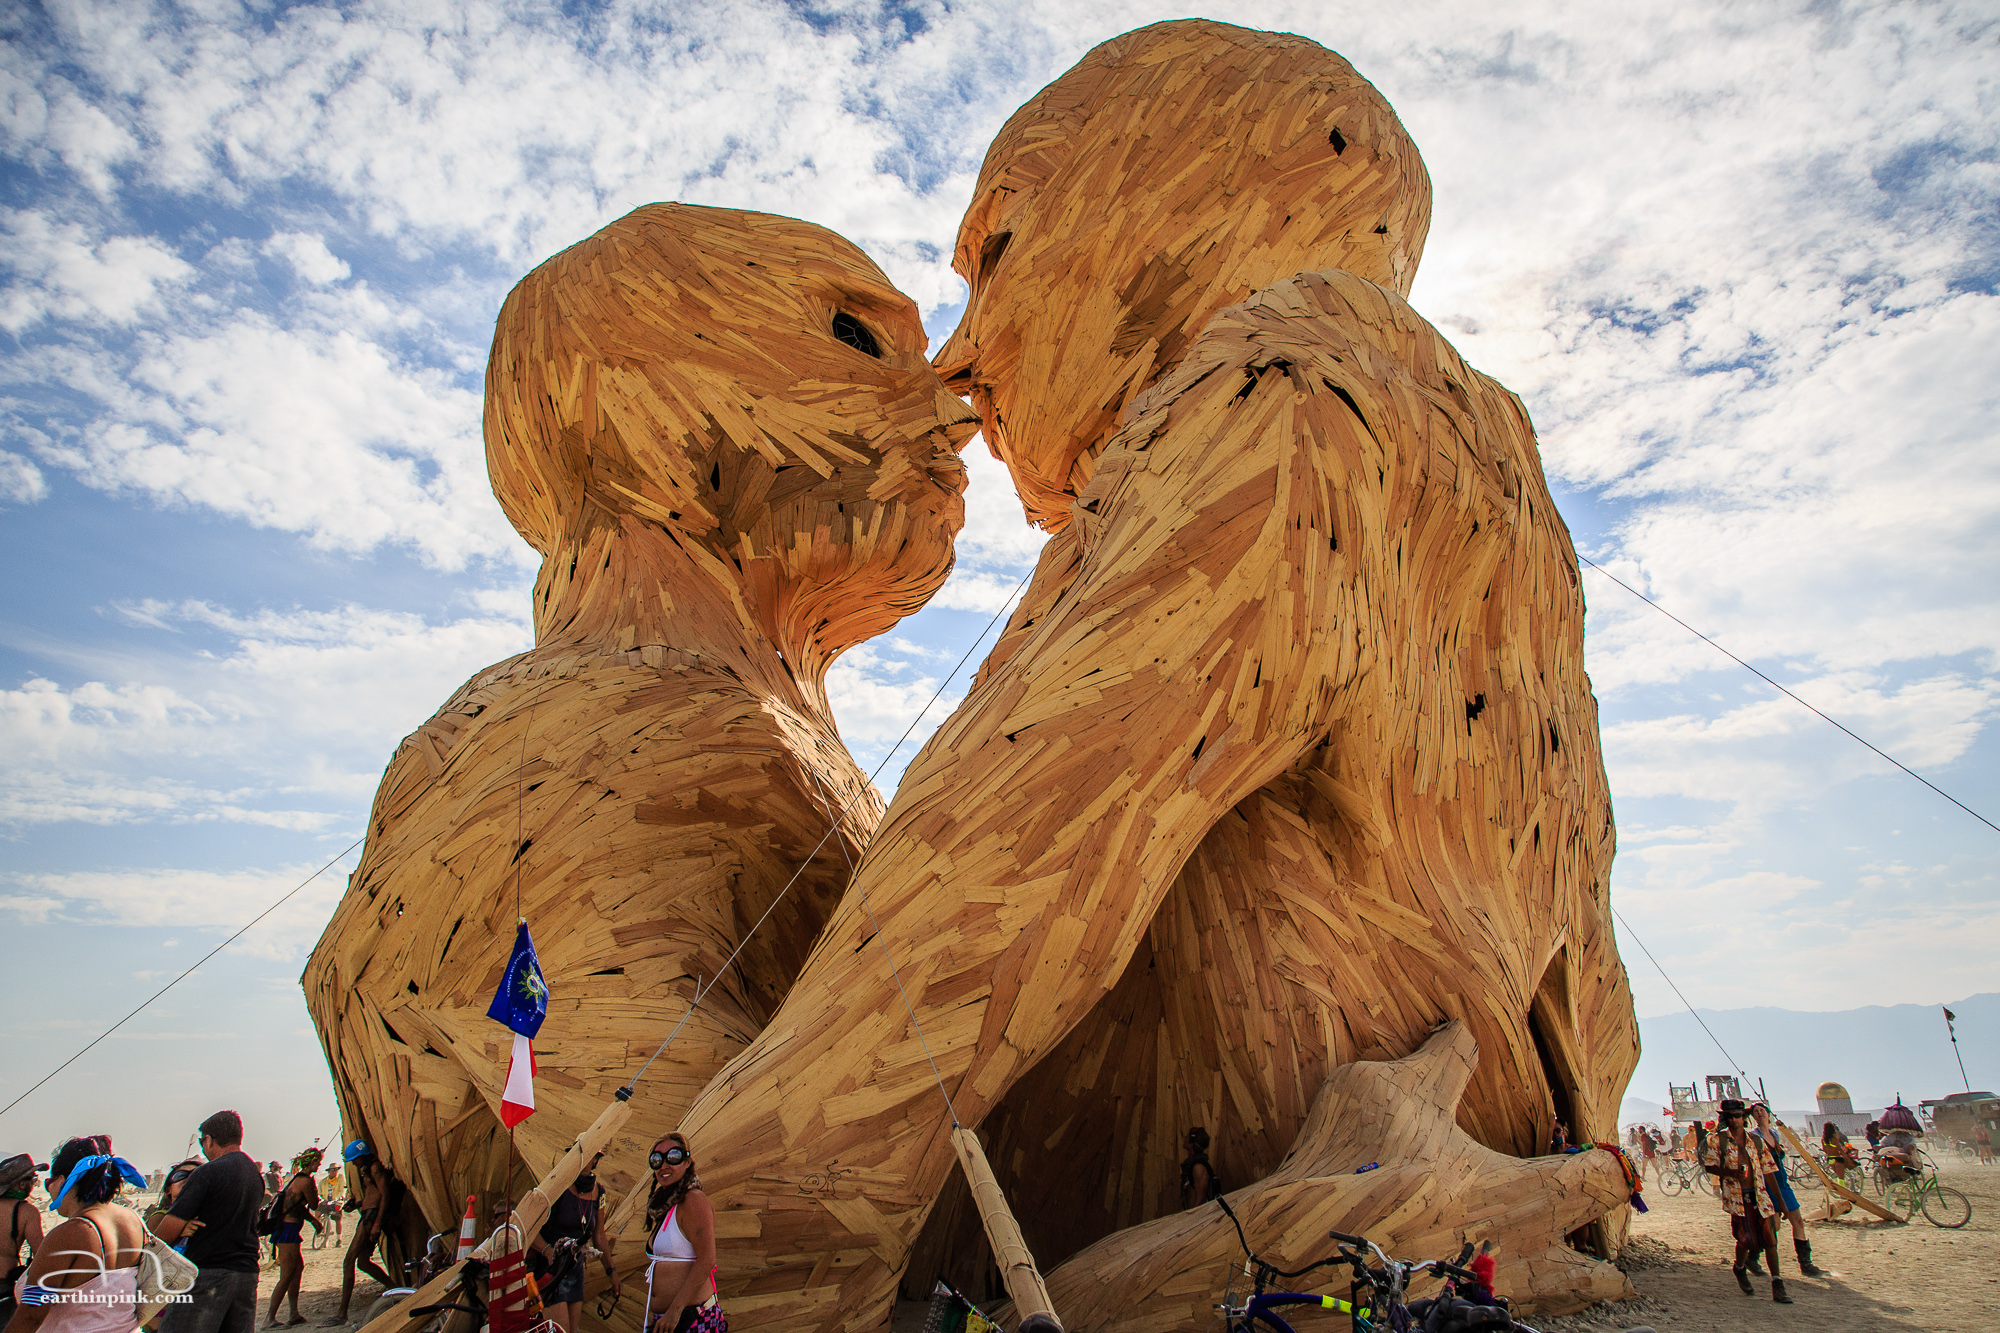 A 7 story tall wooden cathedral-like sculpture of two human figures in an embrace, built by The Pier Group.